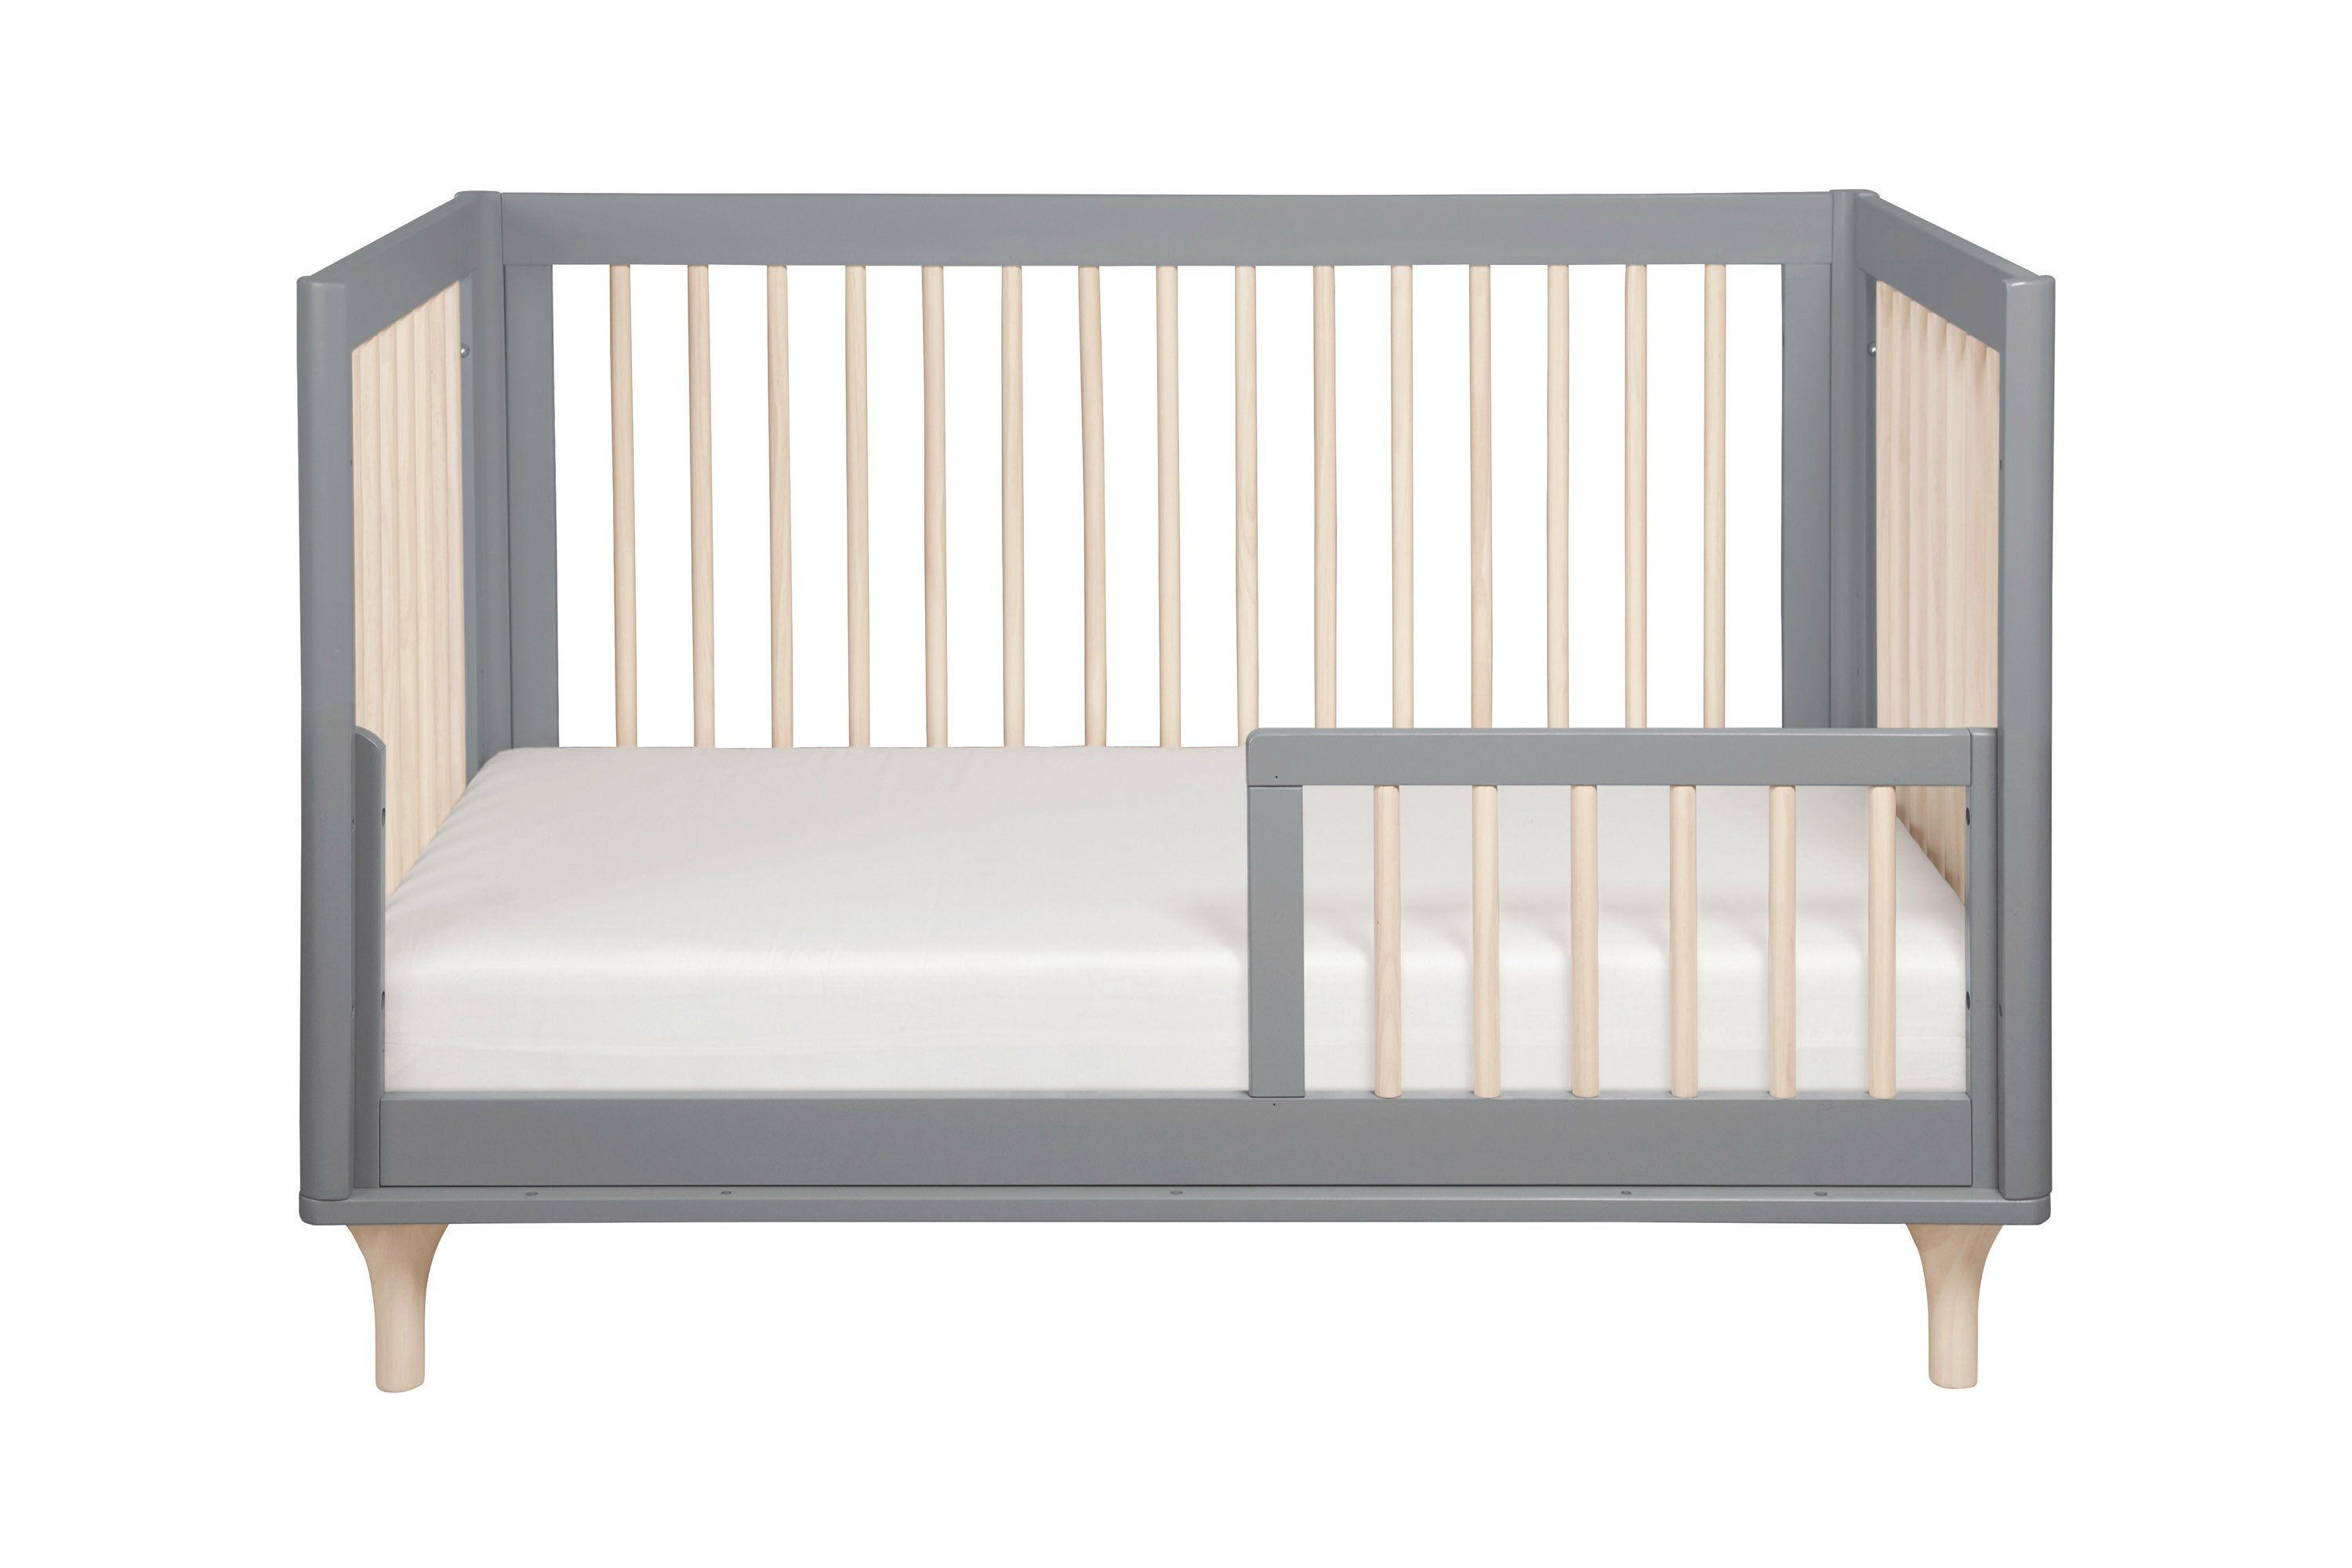 Lolly 3 In 1 Convertible Crib With Toddler Bed Conversion Kit Cribs Convertible Crib Toddler Bed